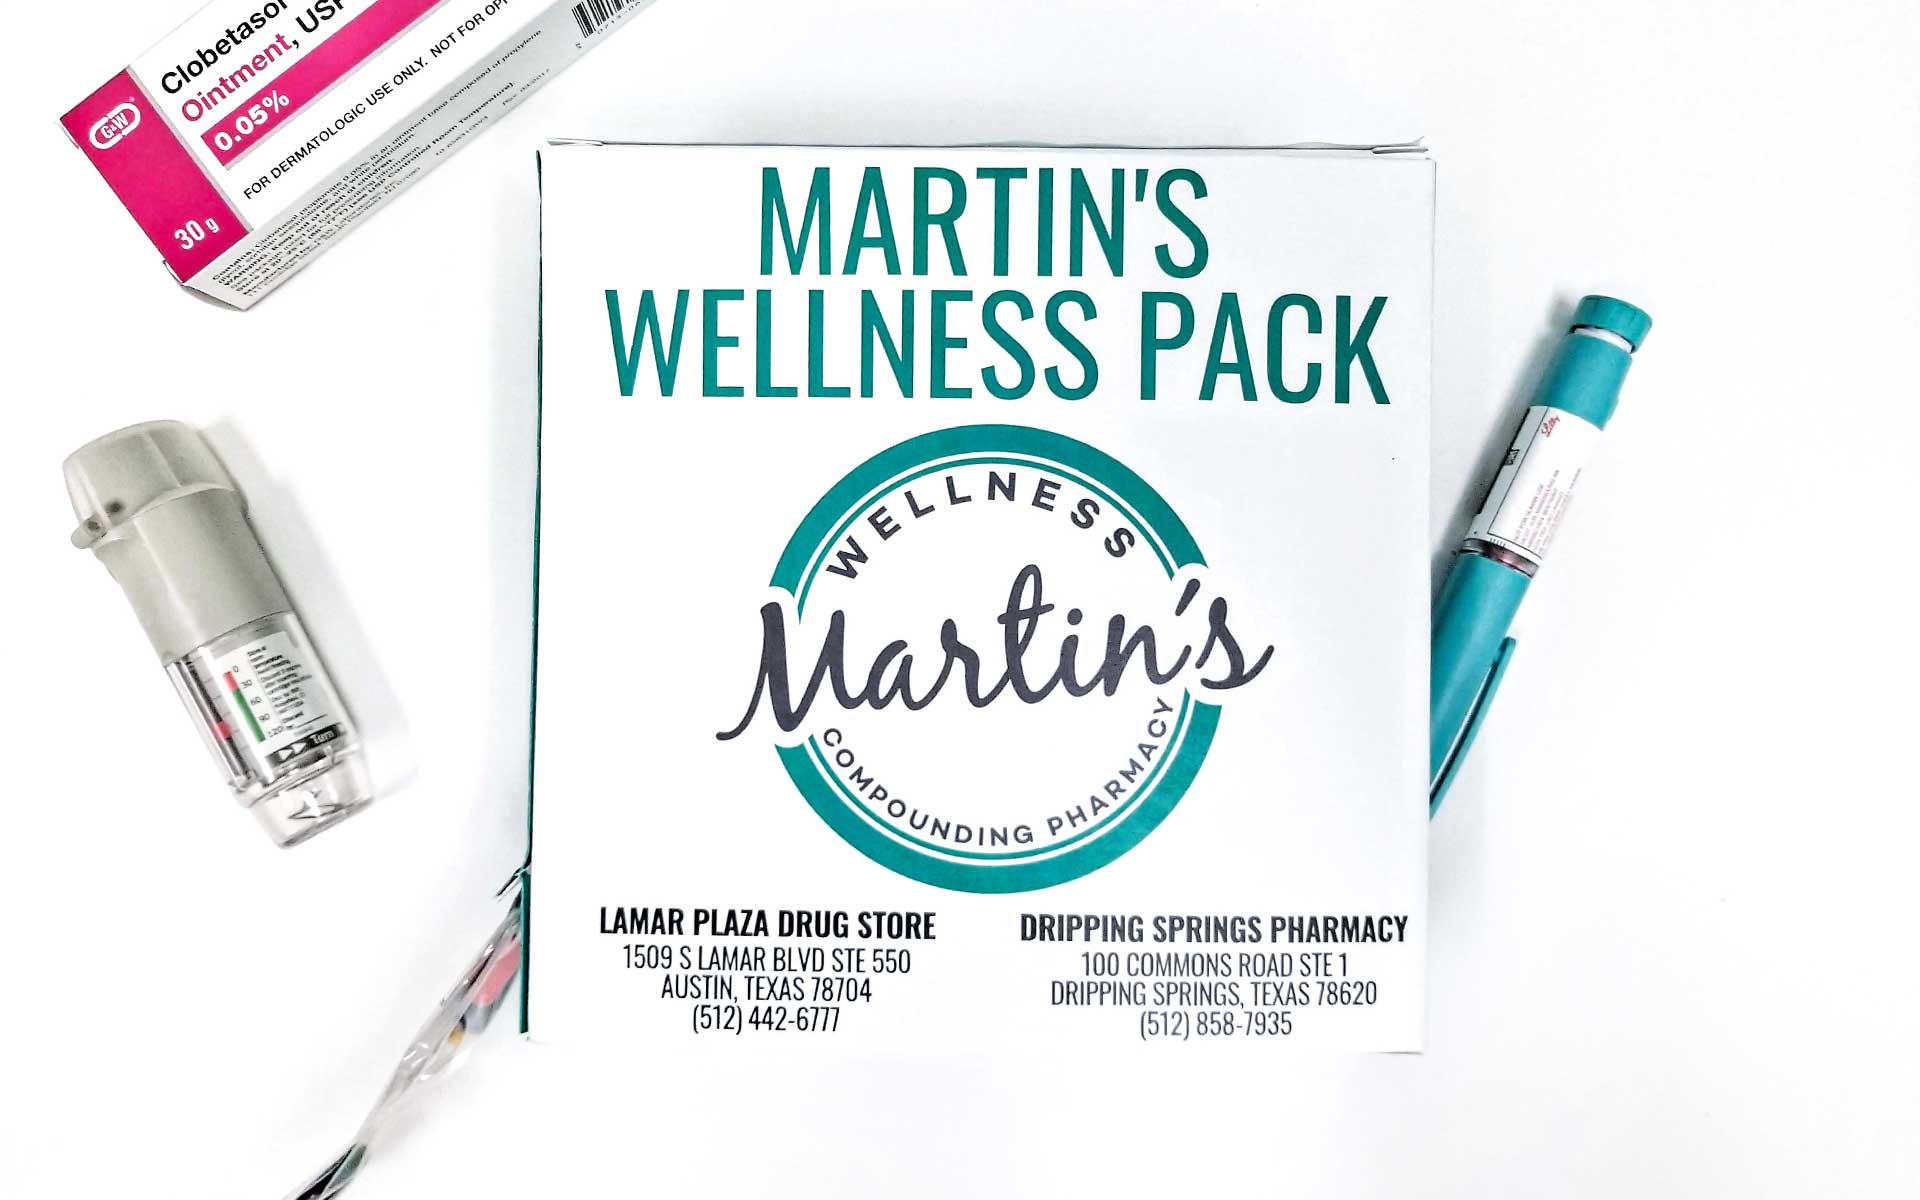 Martin's Wellness Packs